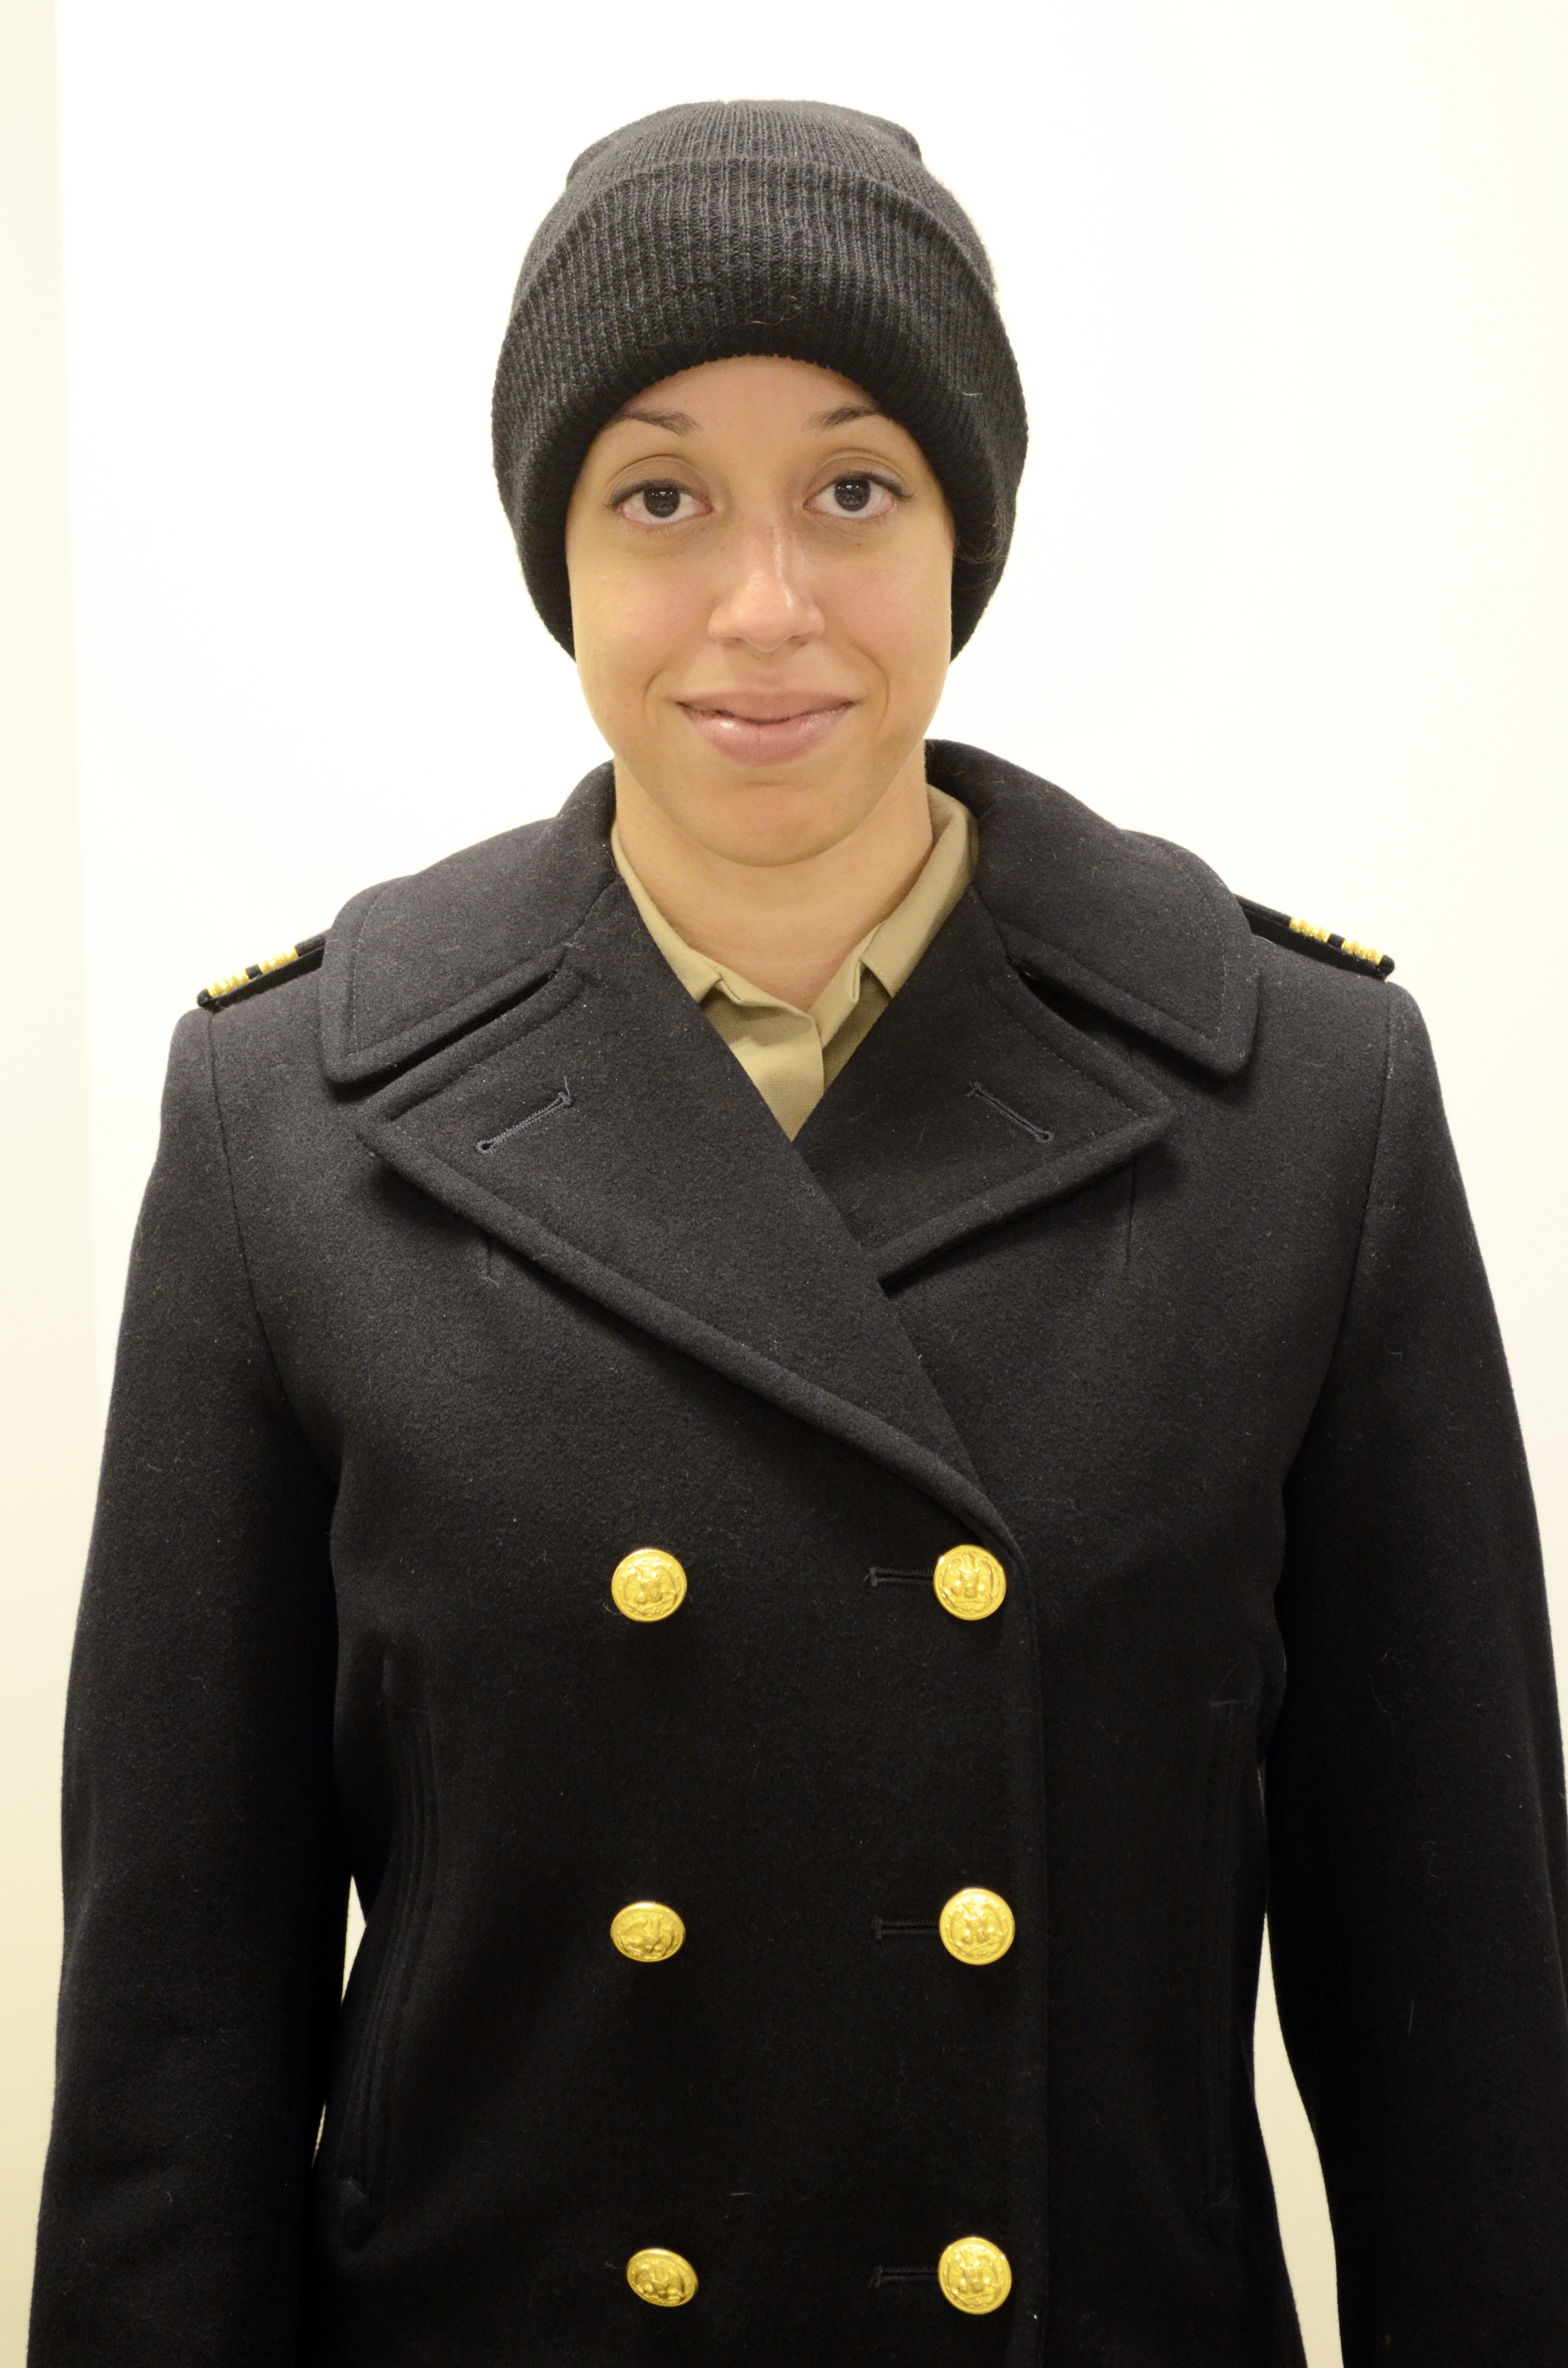 Congress Questions Navy S Plan To Phase Out Iconic Peacoat